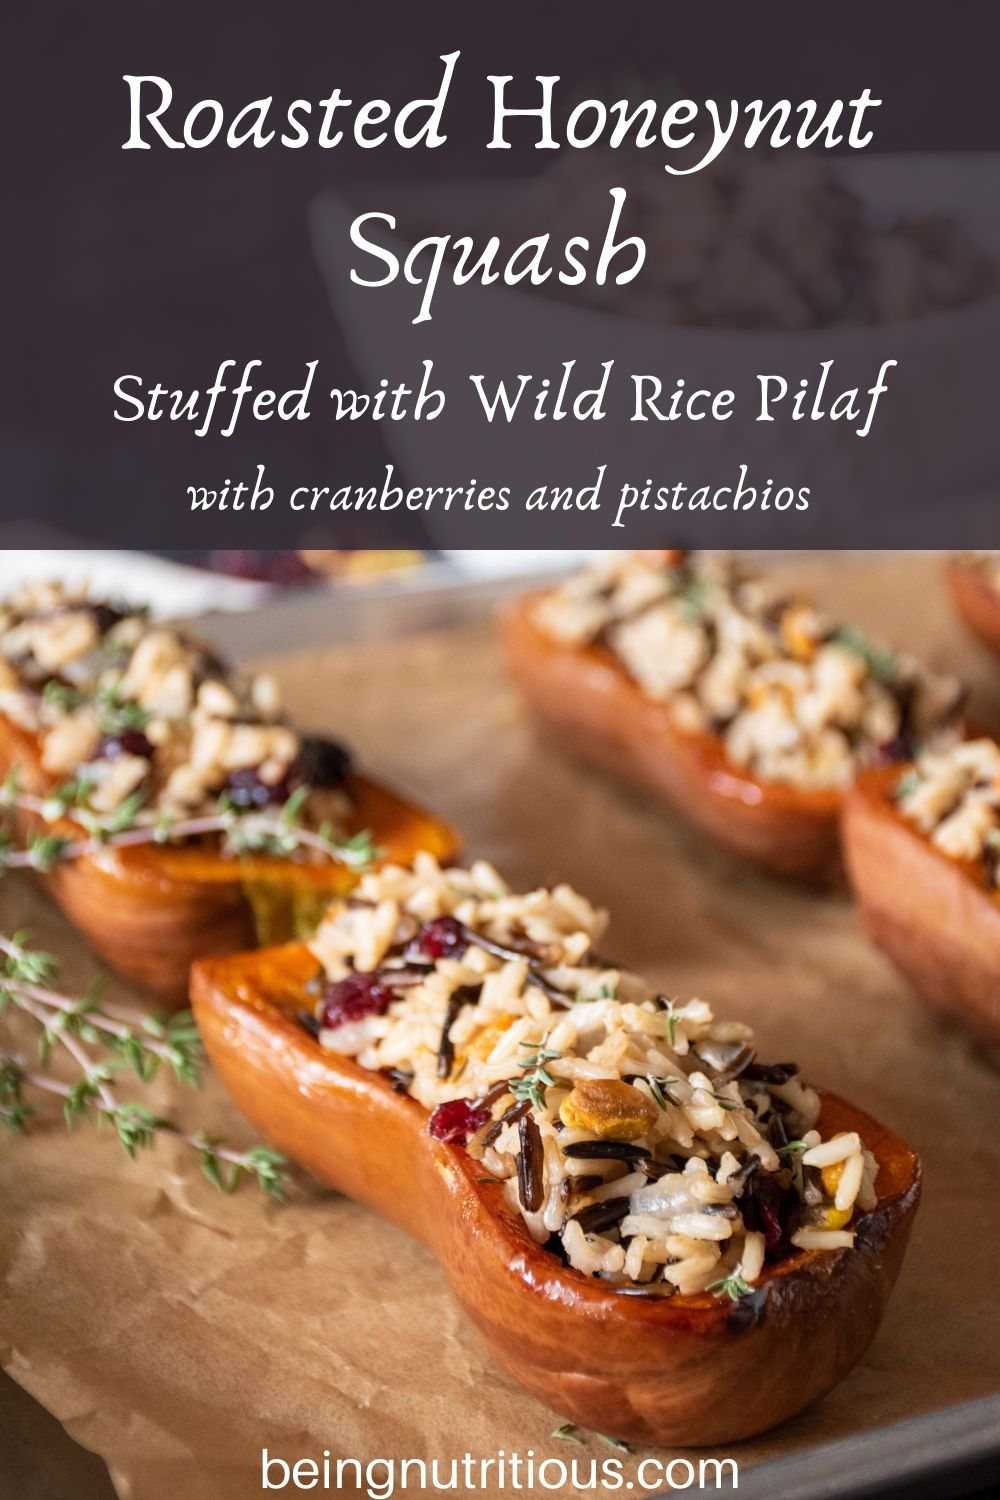 Stuffed honeynut squash halves on a baking pan. Text overlay: Roasted Honeynut Squash Stuffed with Wild Rice Pilaf, with cranberries and pistachios.